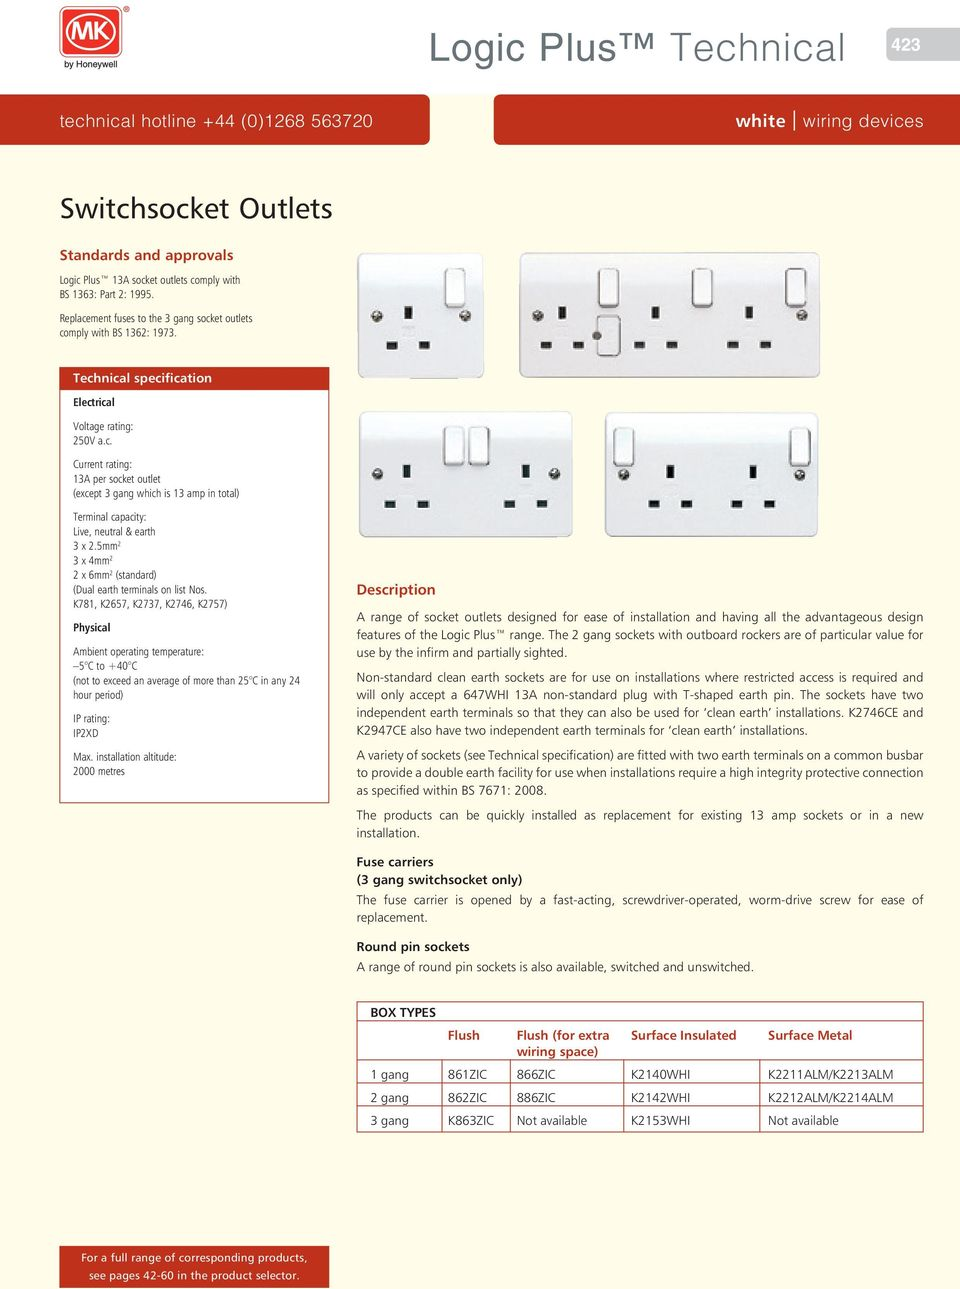 Logic Plus Technical Switchsocket Outlets White Wiring Devices Two Double Mm X 6mm Standard Dual Earth Terminals On List Os 2 Ogic